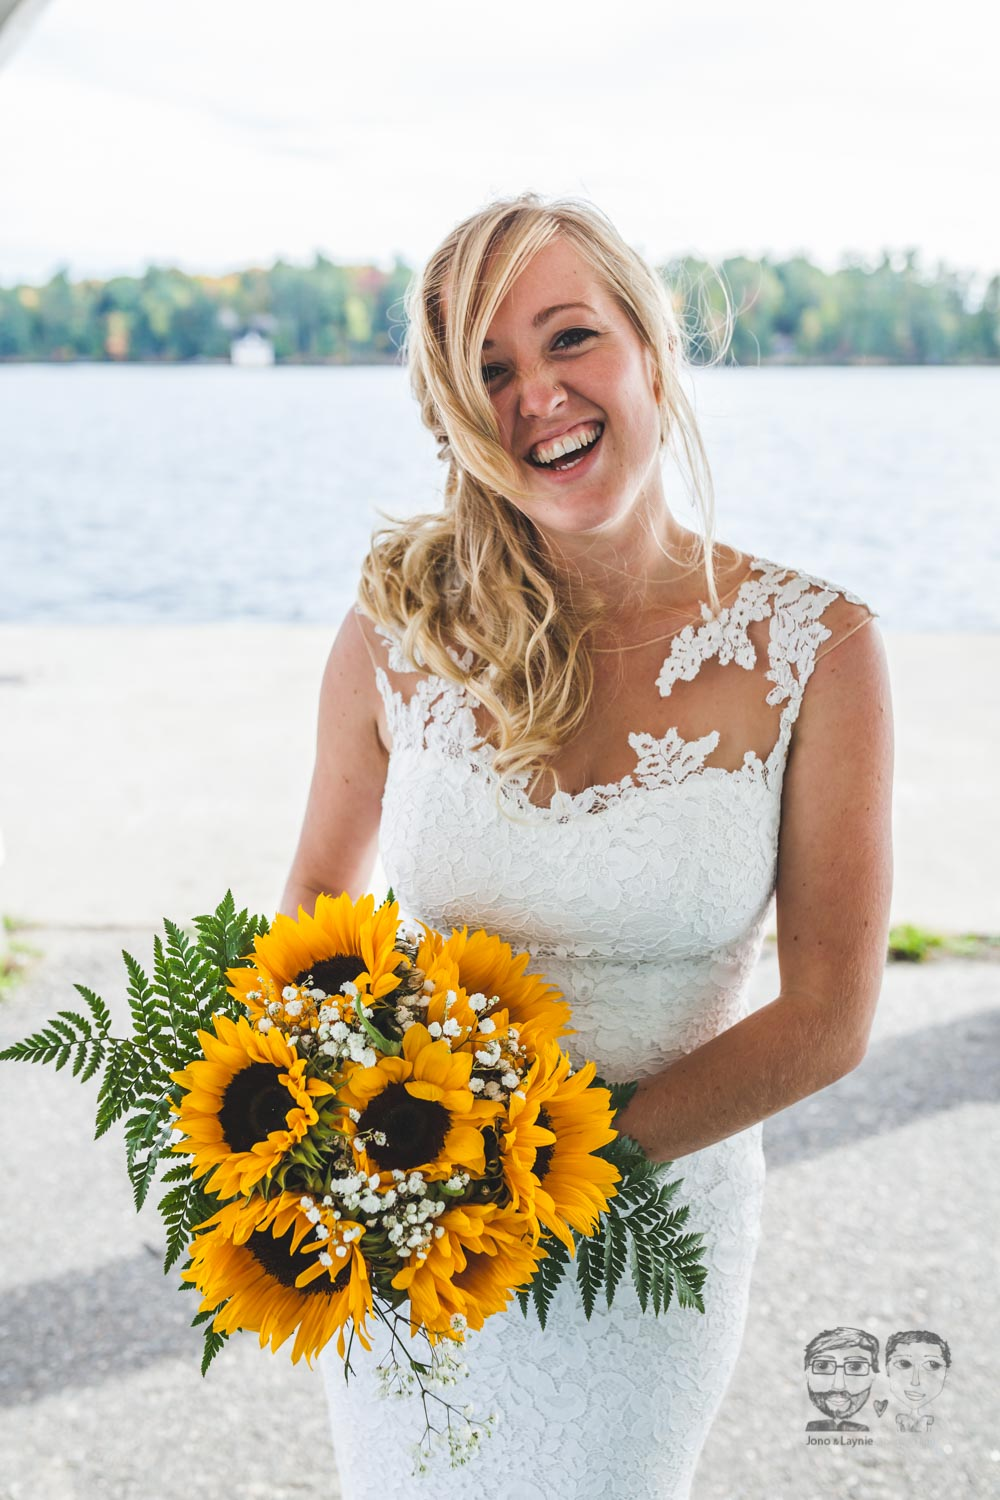 Muskoka Wedding Photographer-Jono & Laynie Co.063.jpg